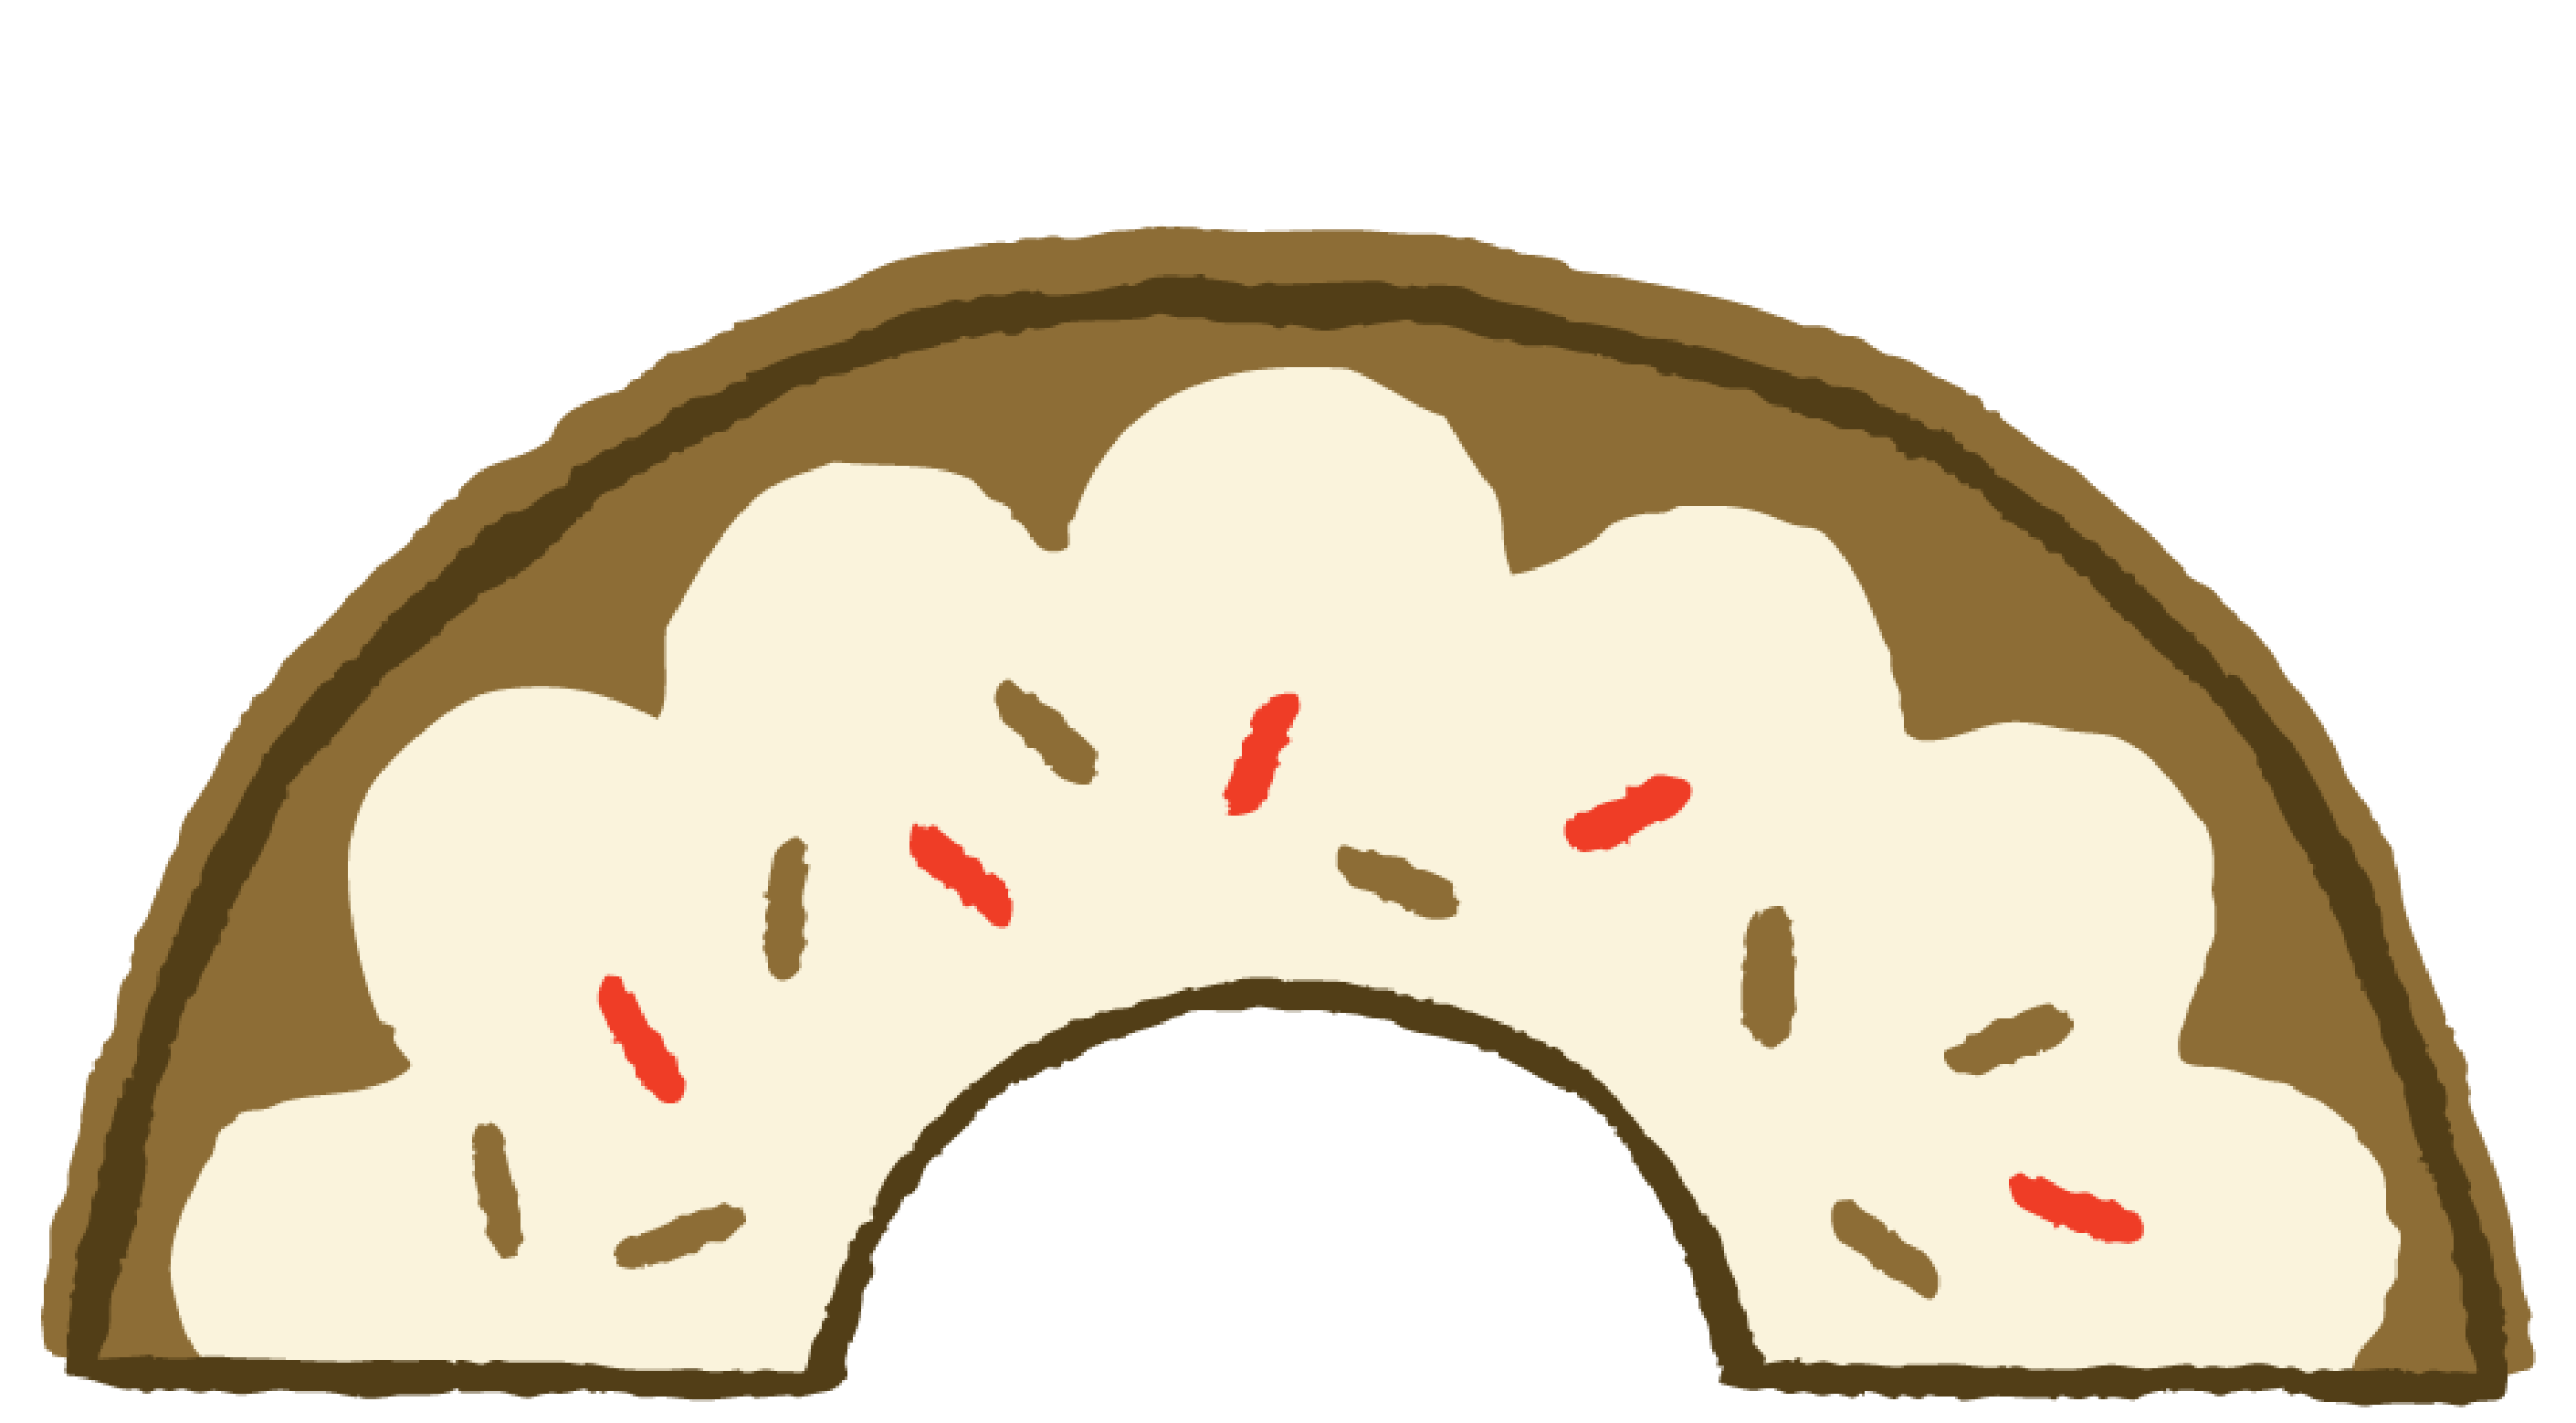 Strawberries clipart frosted donut. Menu friend first choose